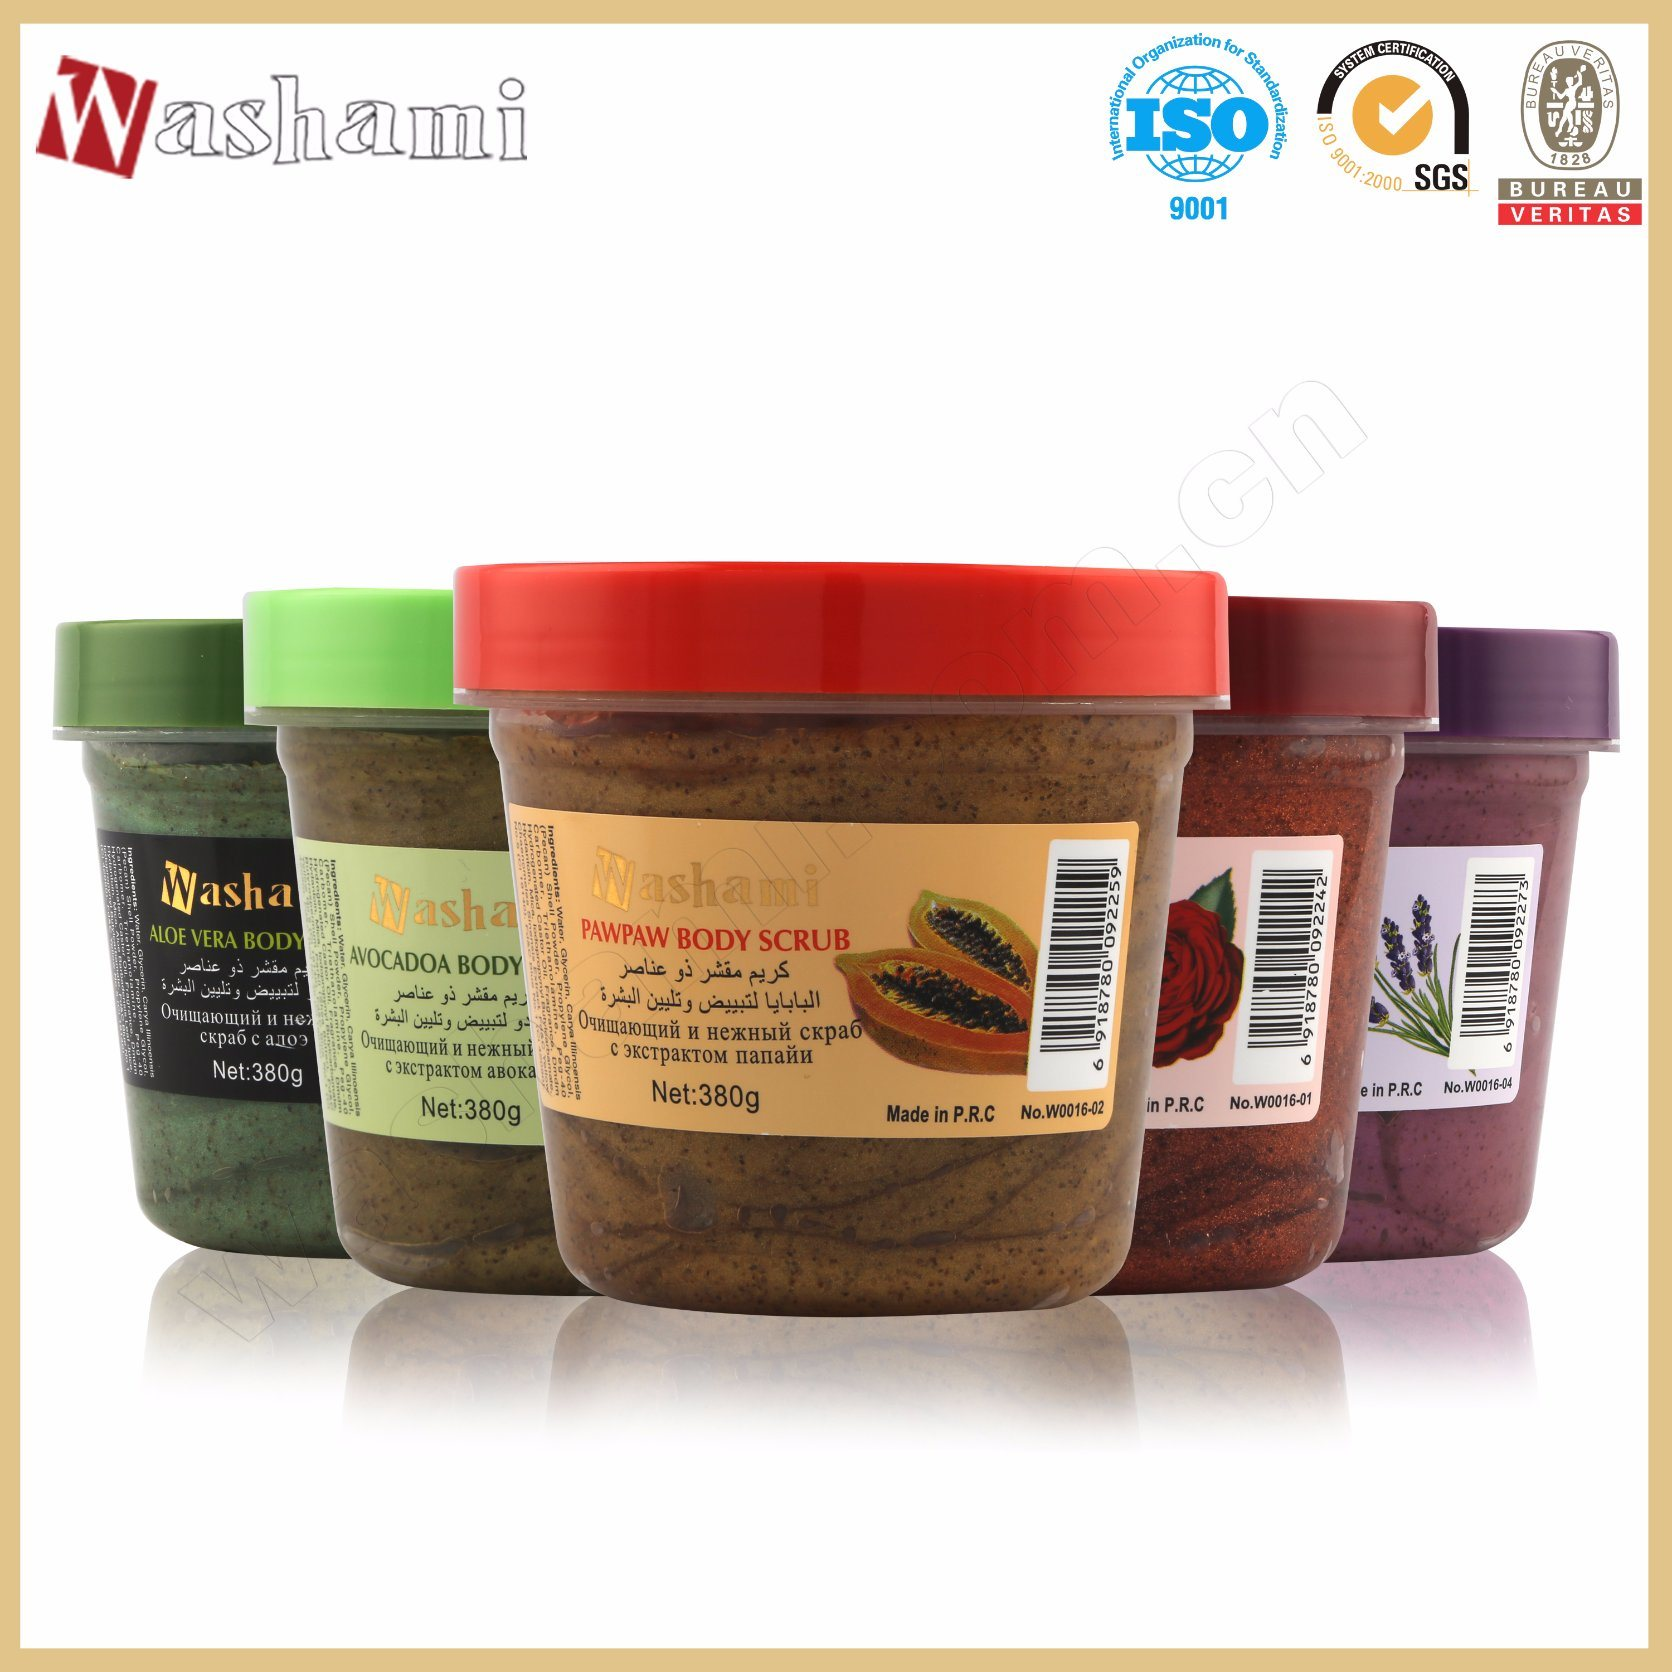 Washami Box-Packed Organic Natural Plant Essence Whitening Body Scrub with Pecan Shell Powder